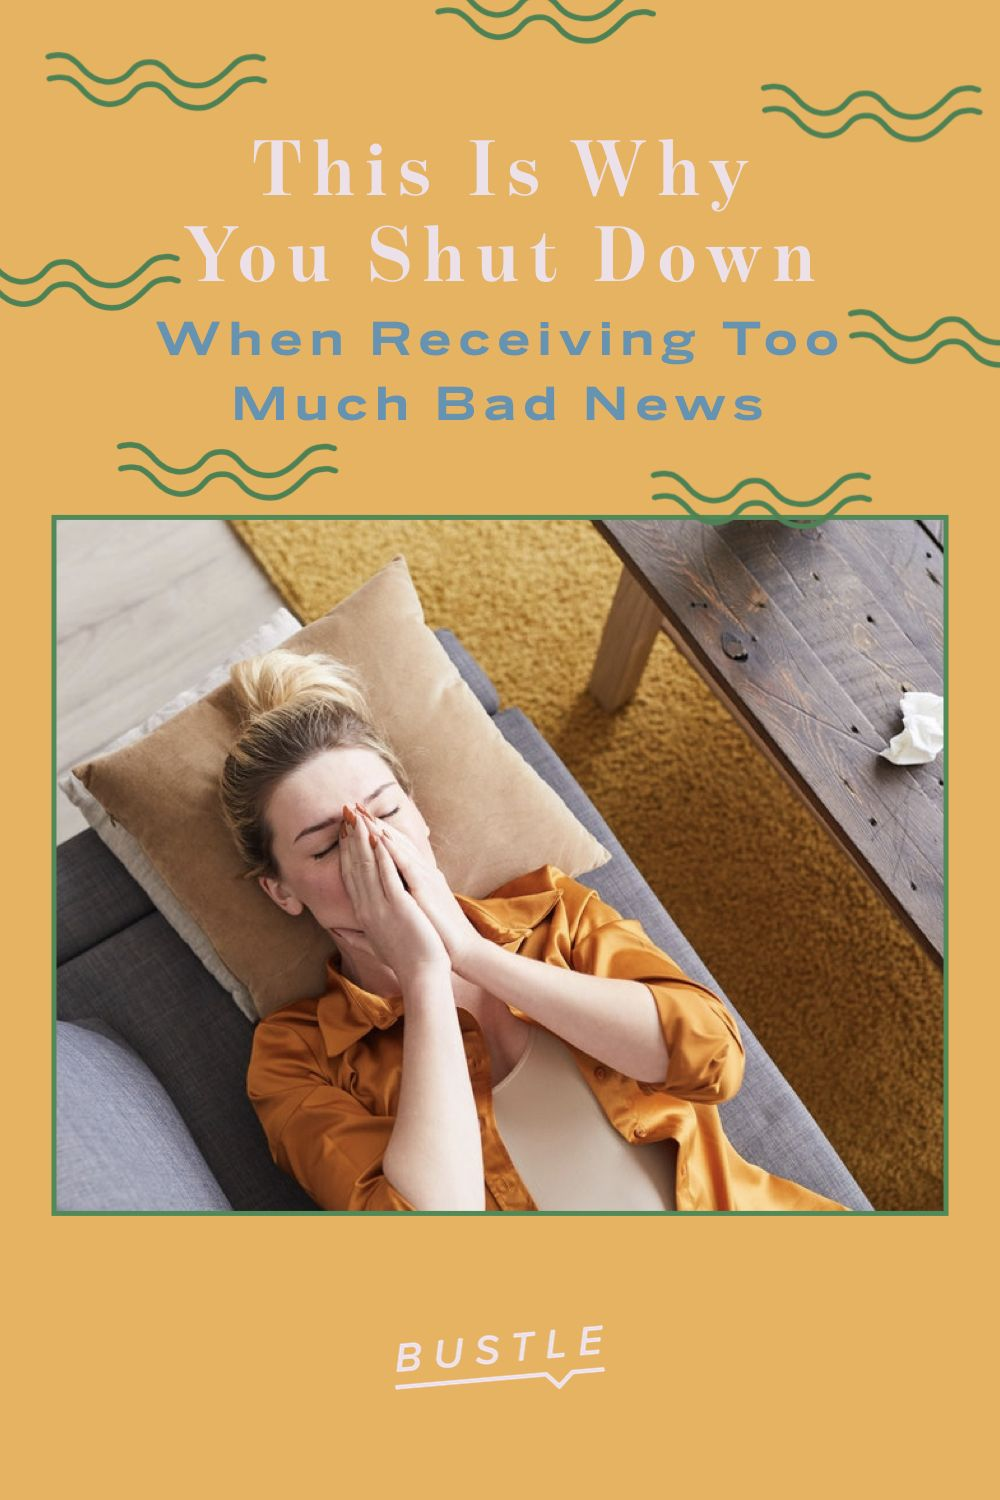 This Is Why You Shut Down When Receiving Too Much Bad News